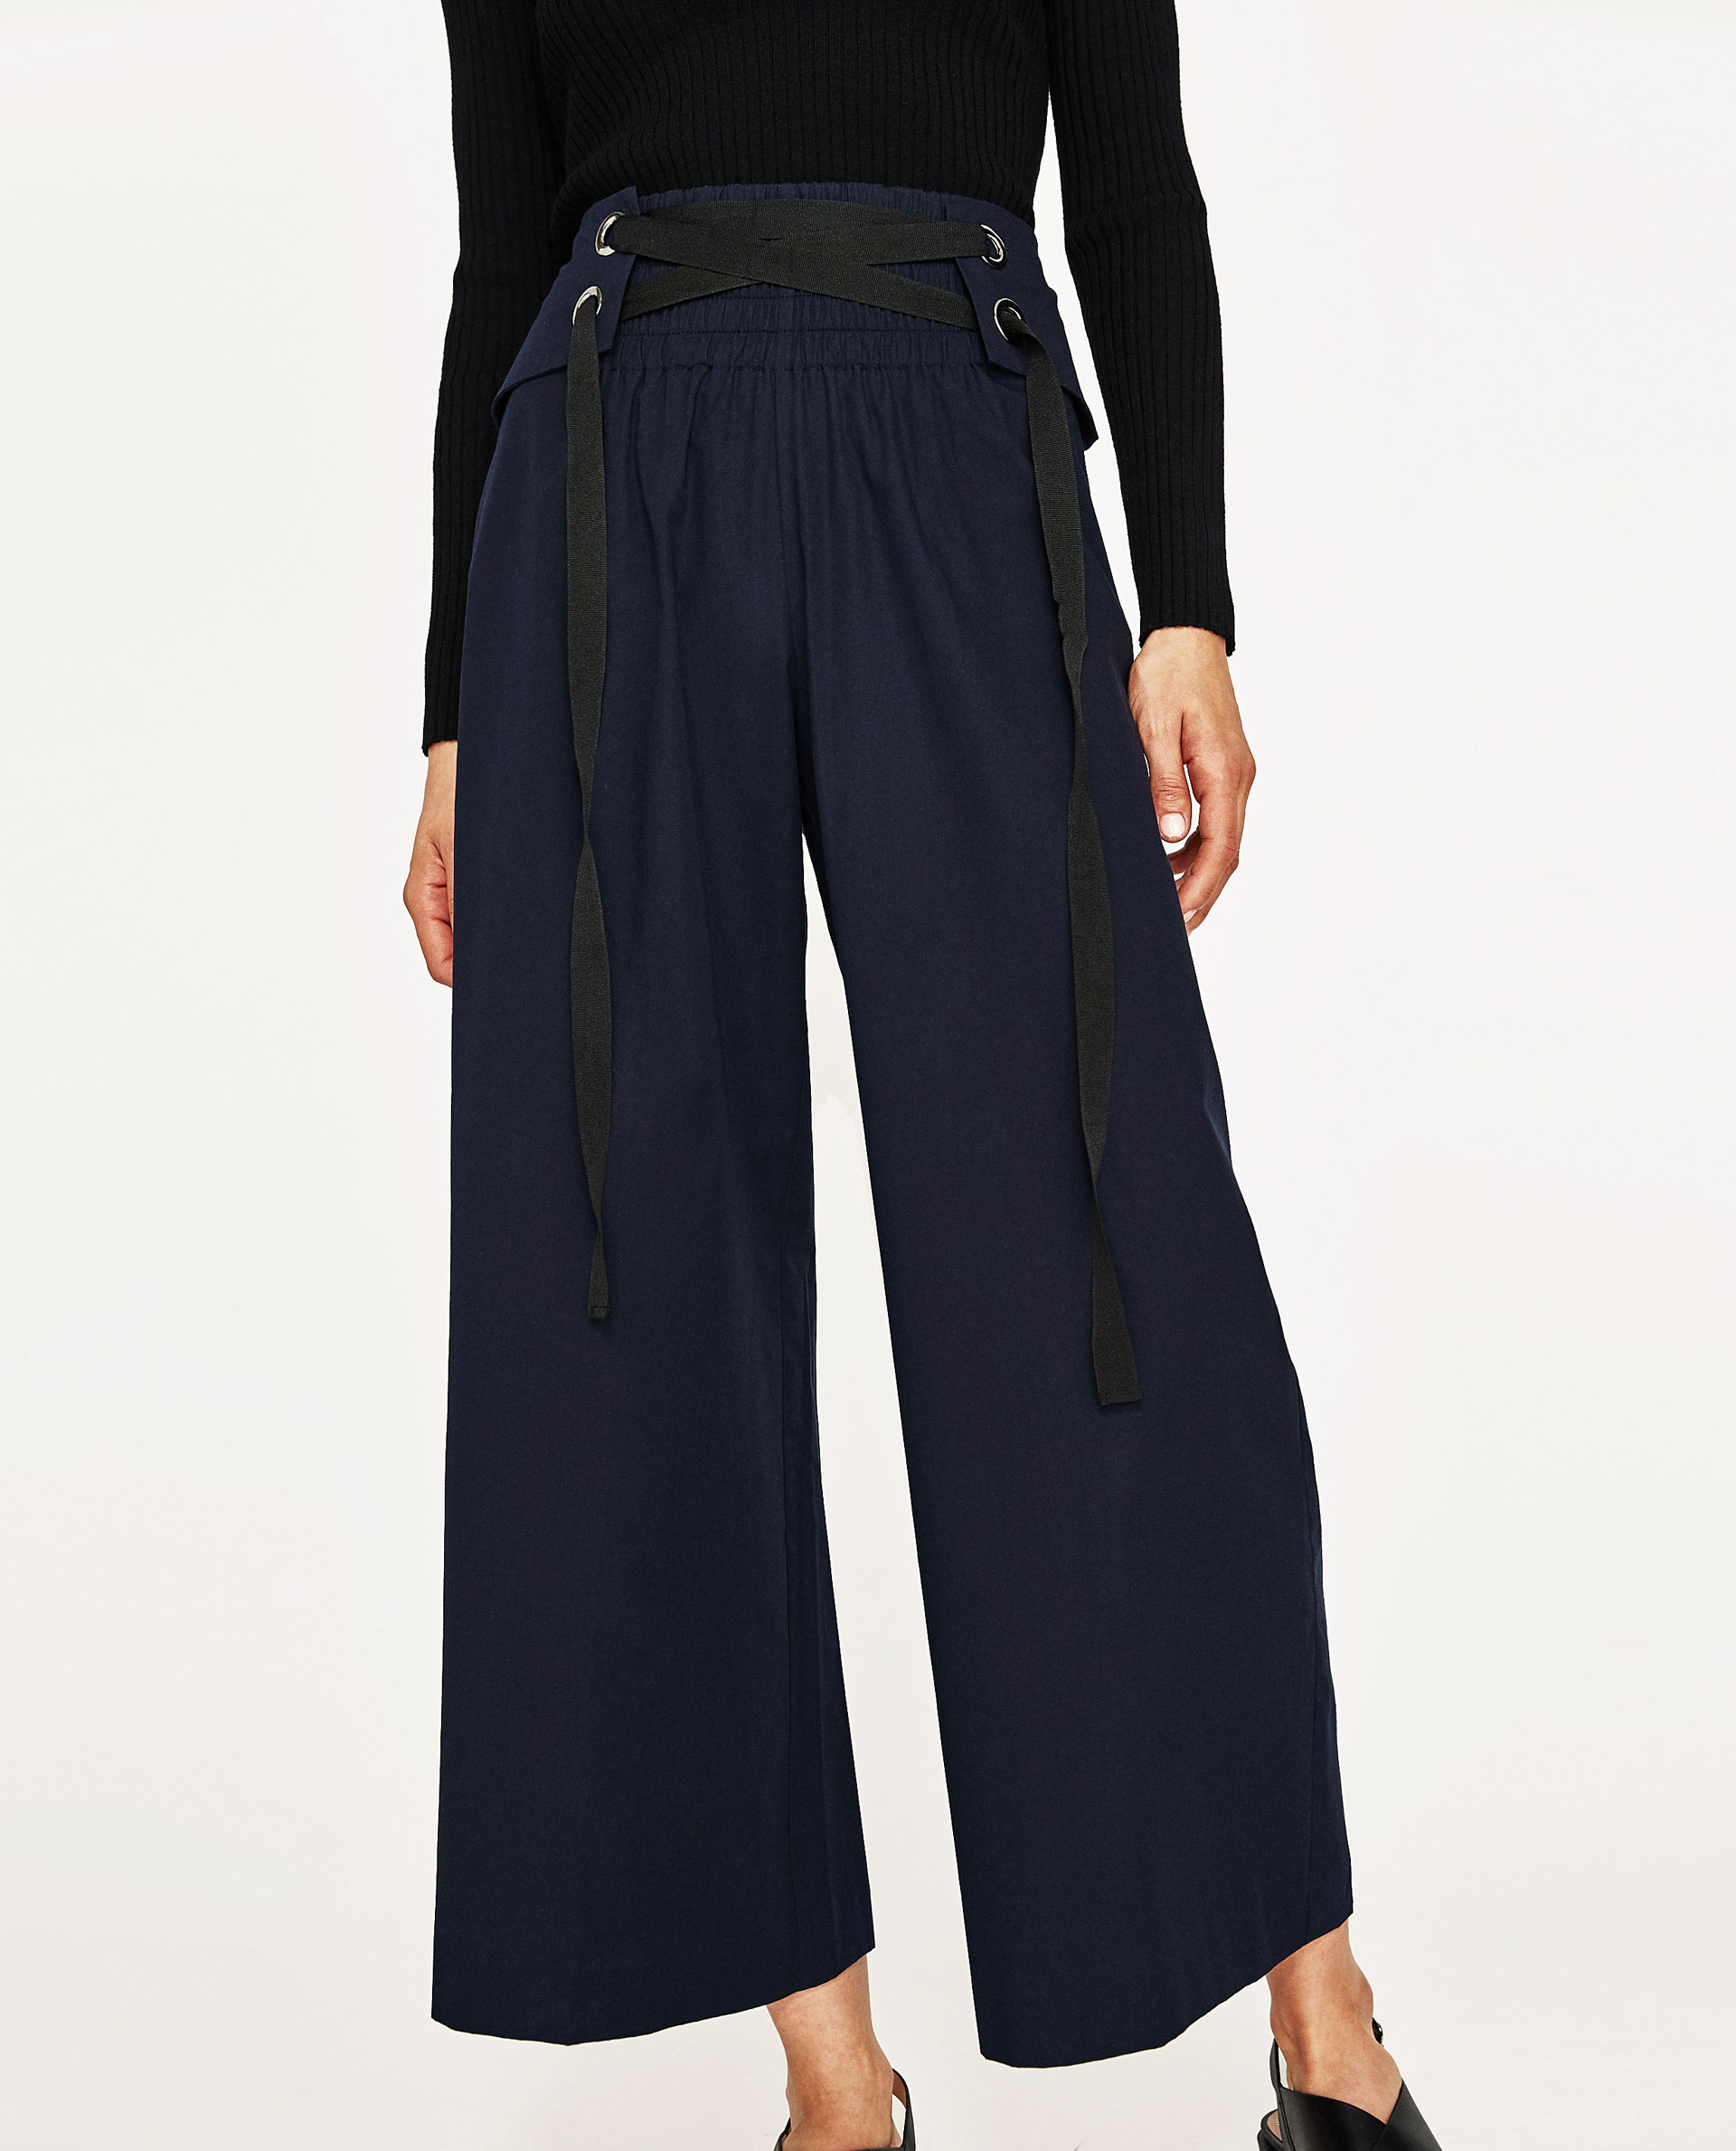 $49.90 - Zara Cropped Corset Belt Trousers